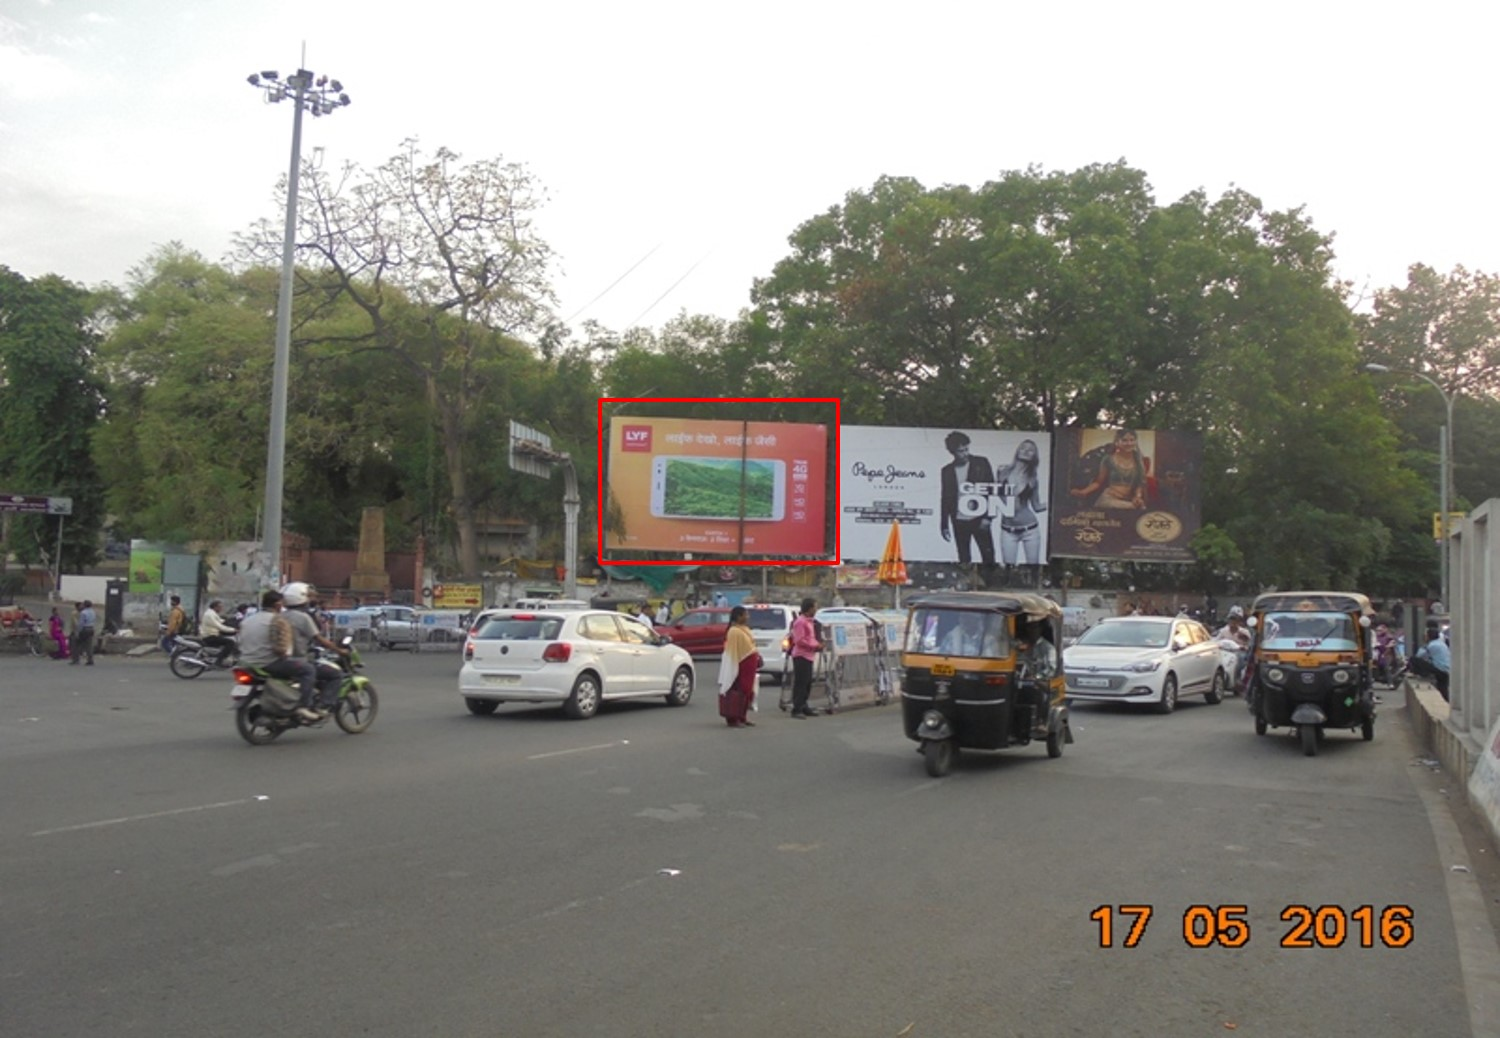 Jaistumbh Sq. Near Railway Station, Nagpur